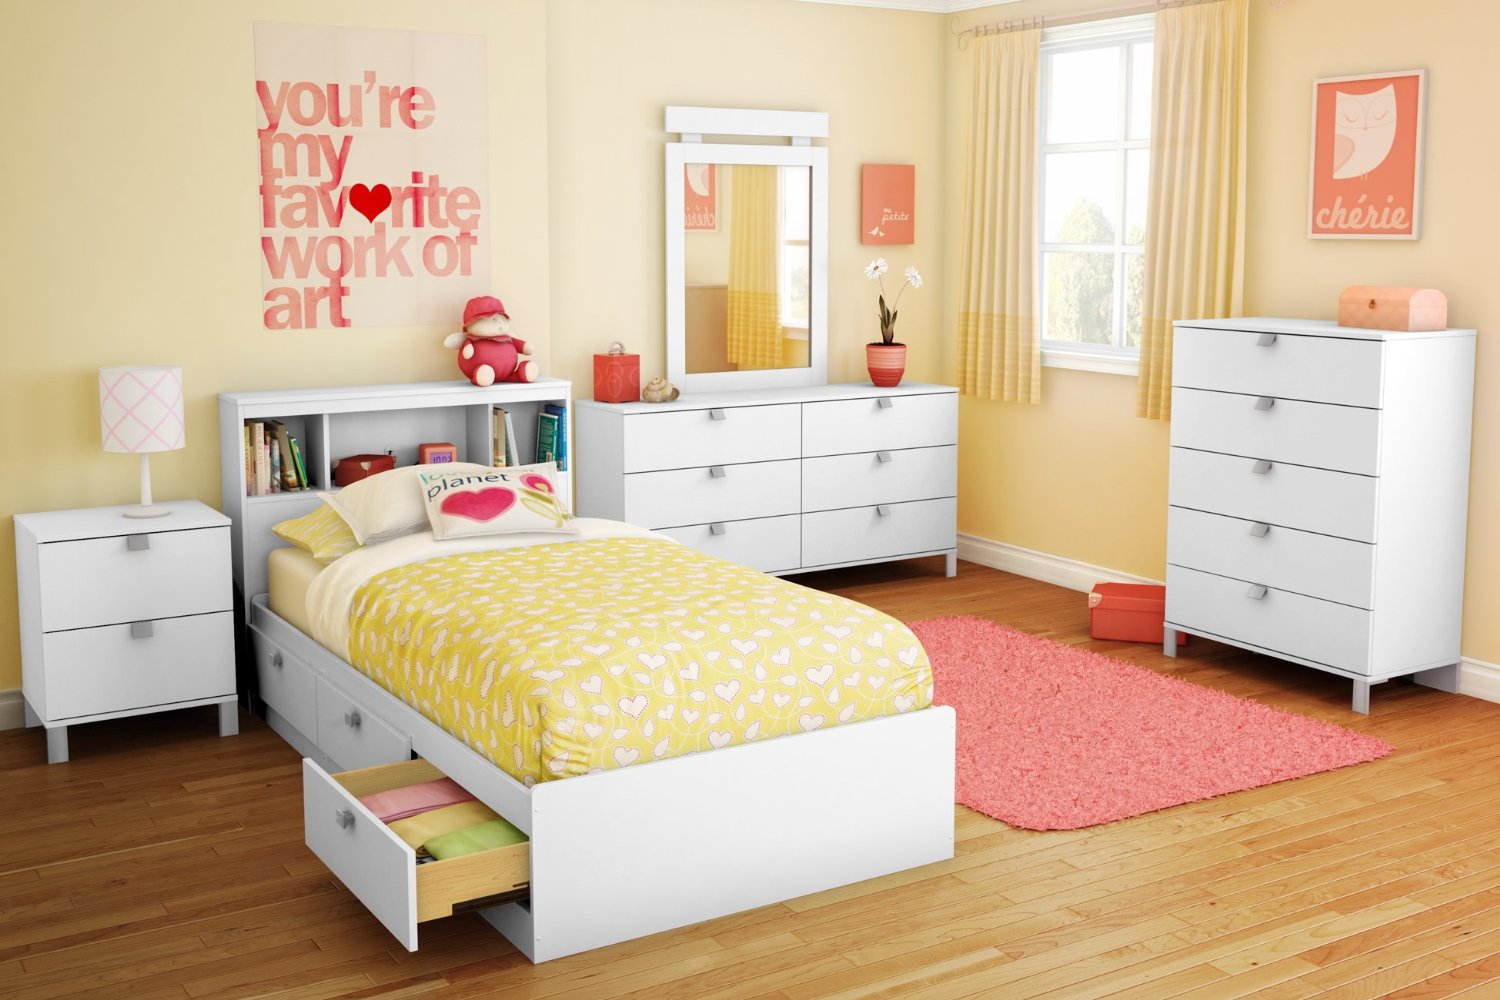 Have Your Children Twin Bed with Storage for Well Organized Kids ...